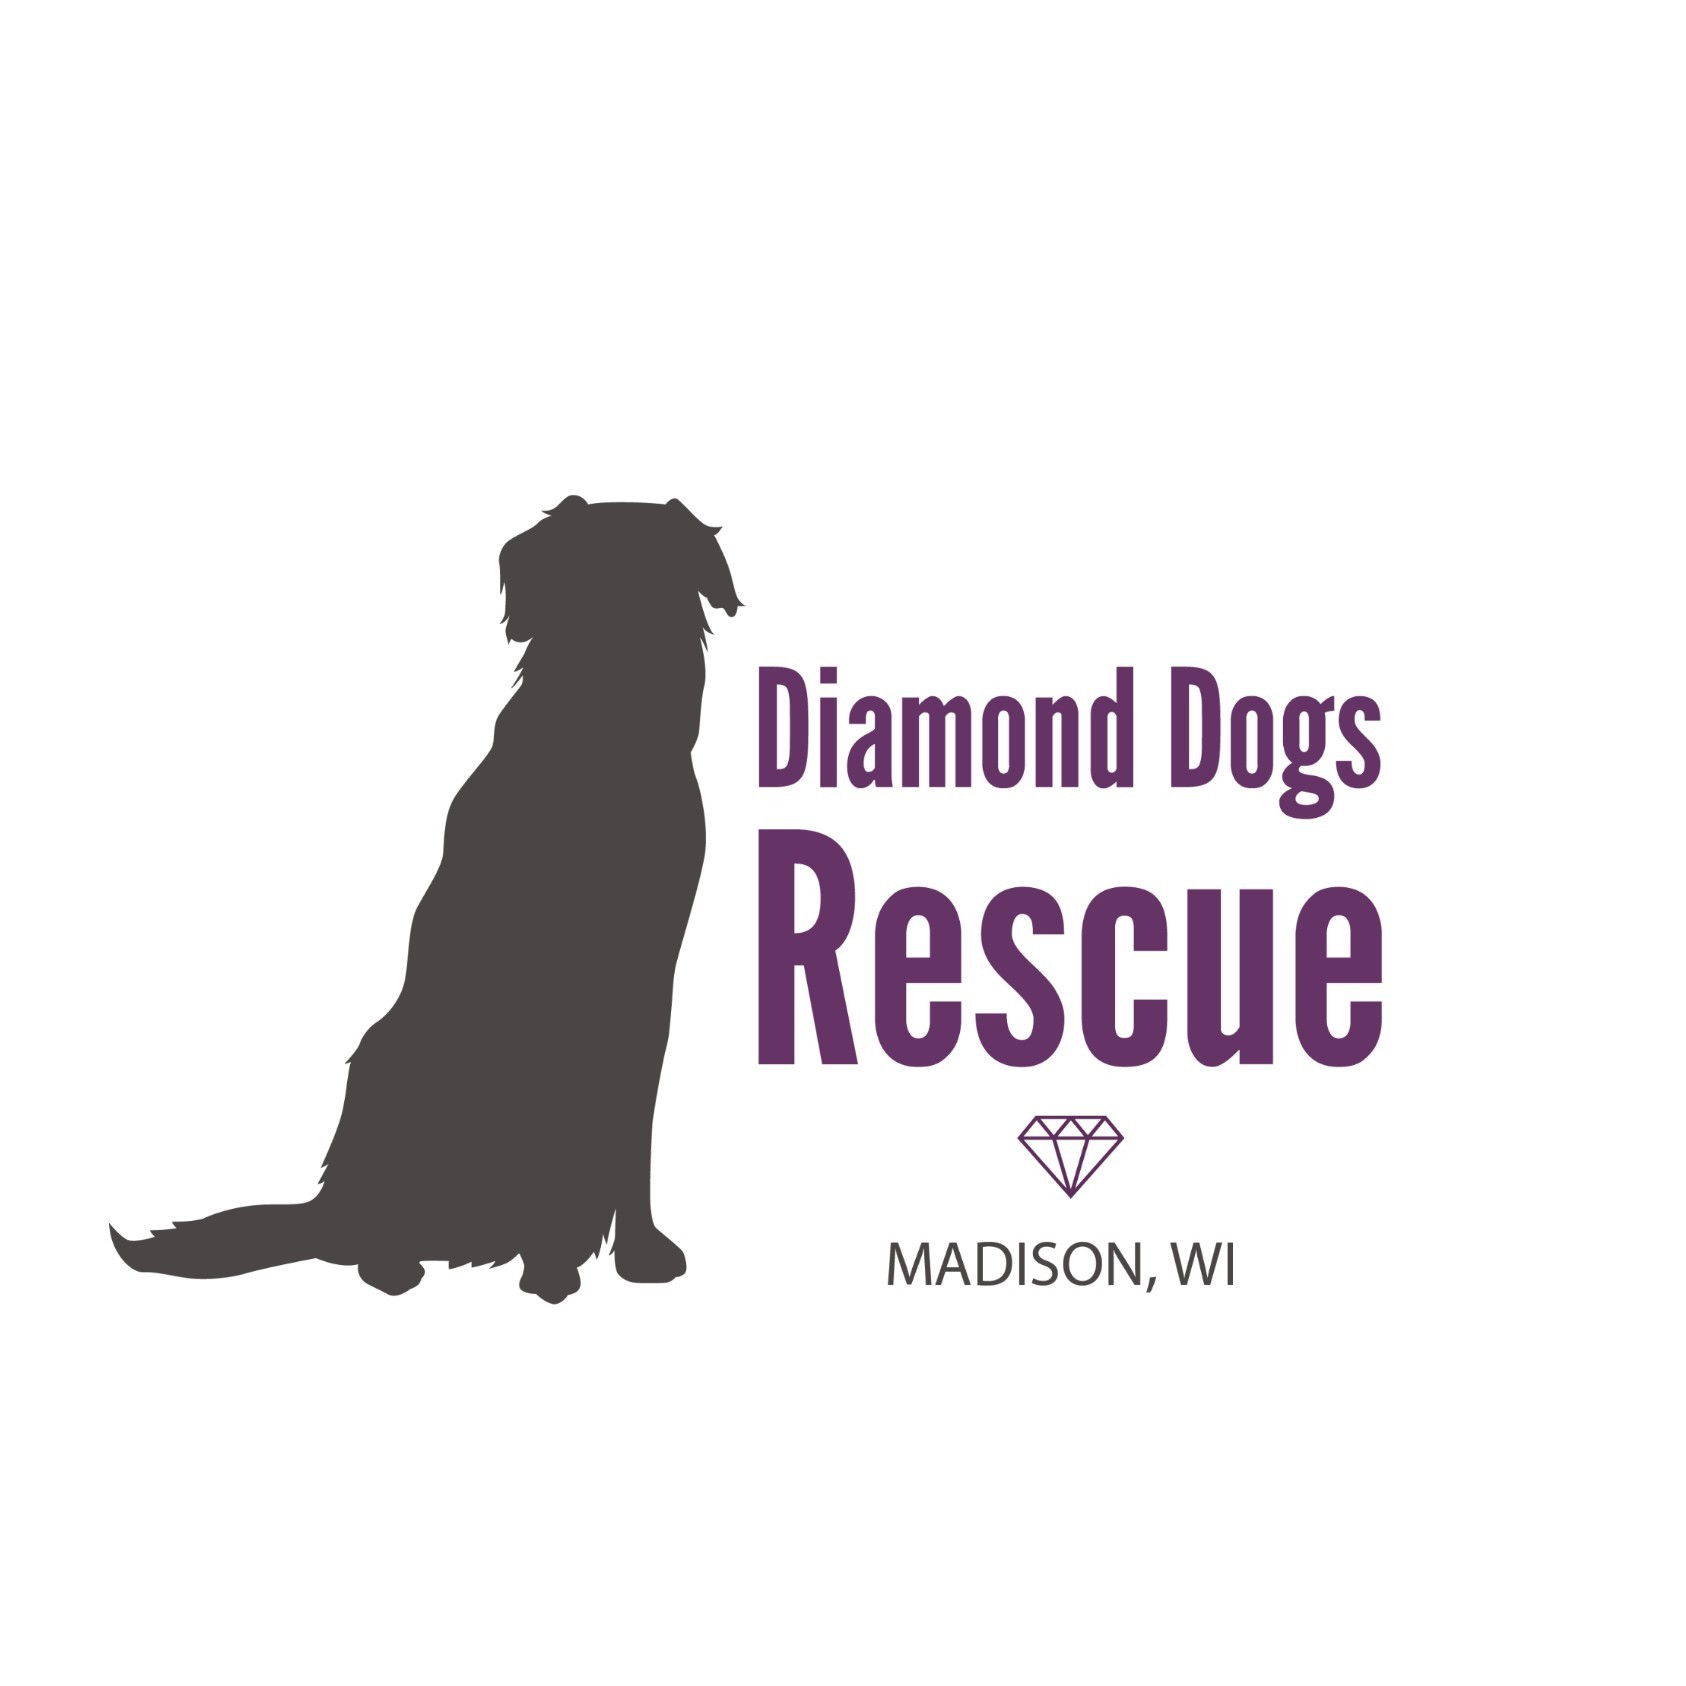 Diamond Dogs Rescue